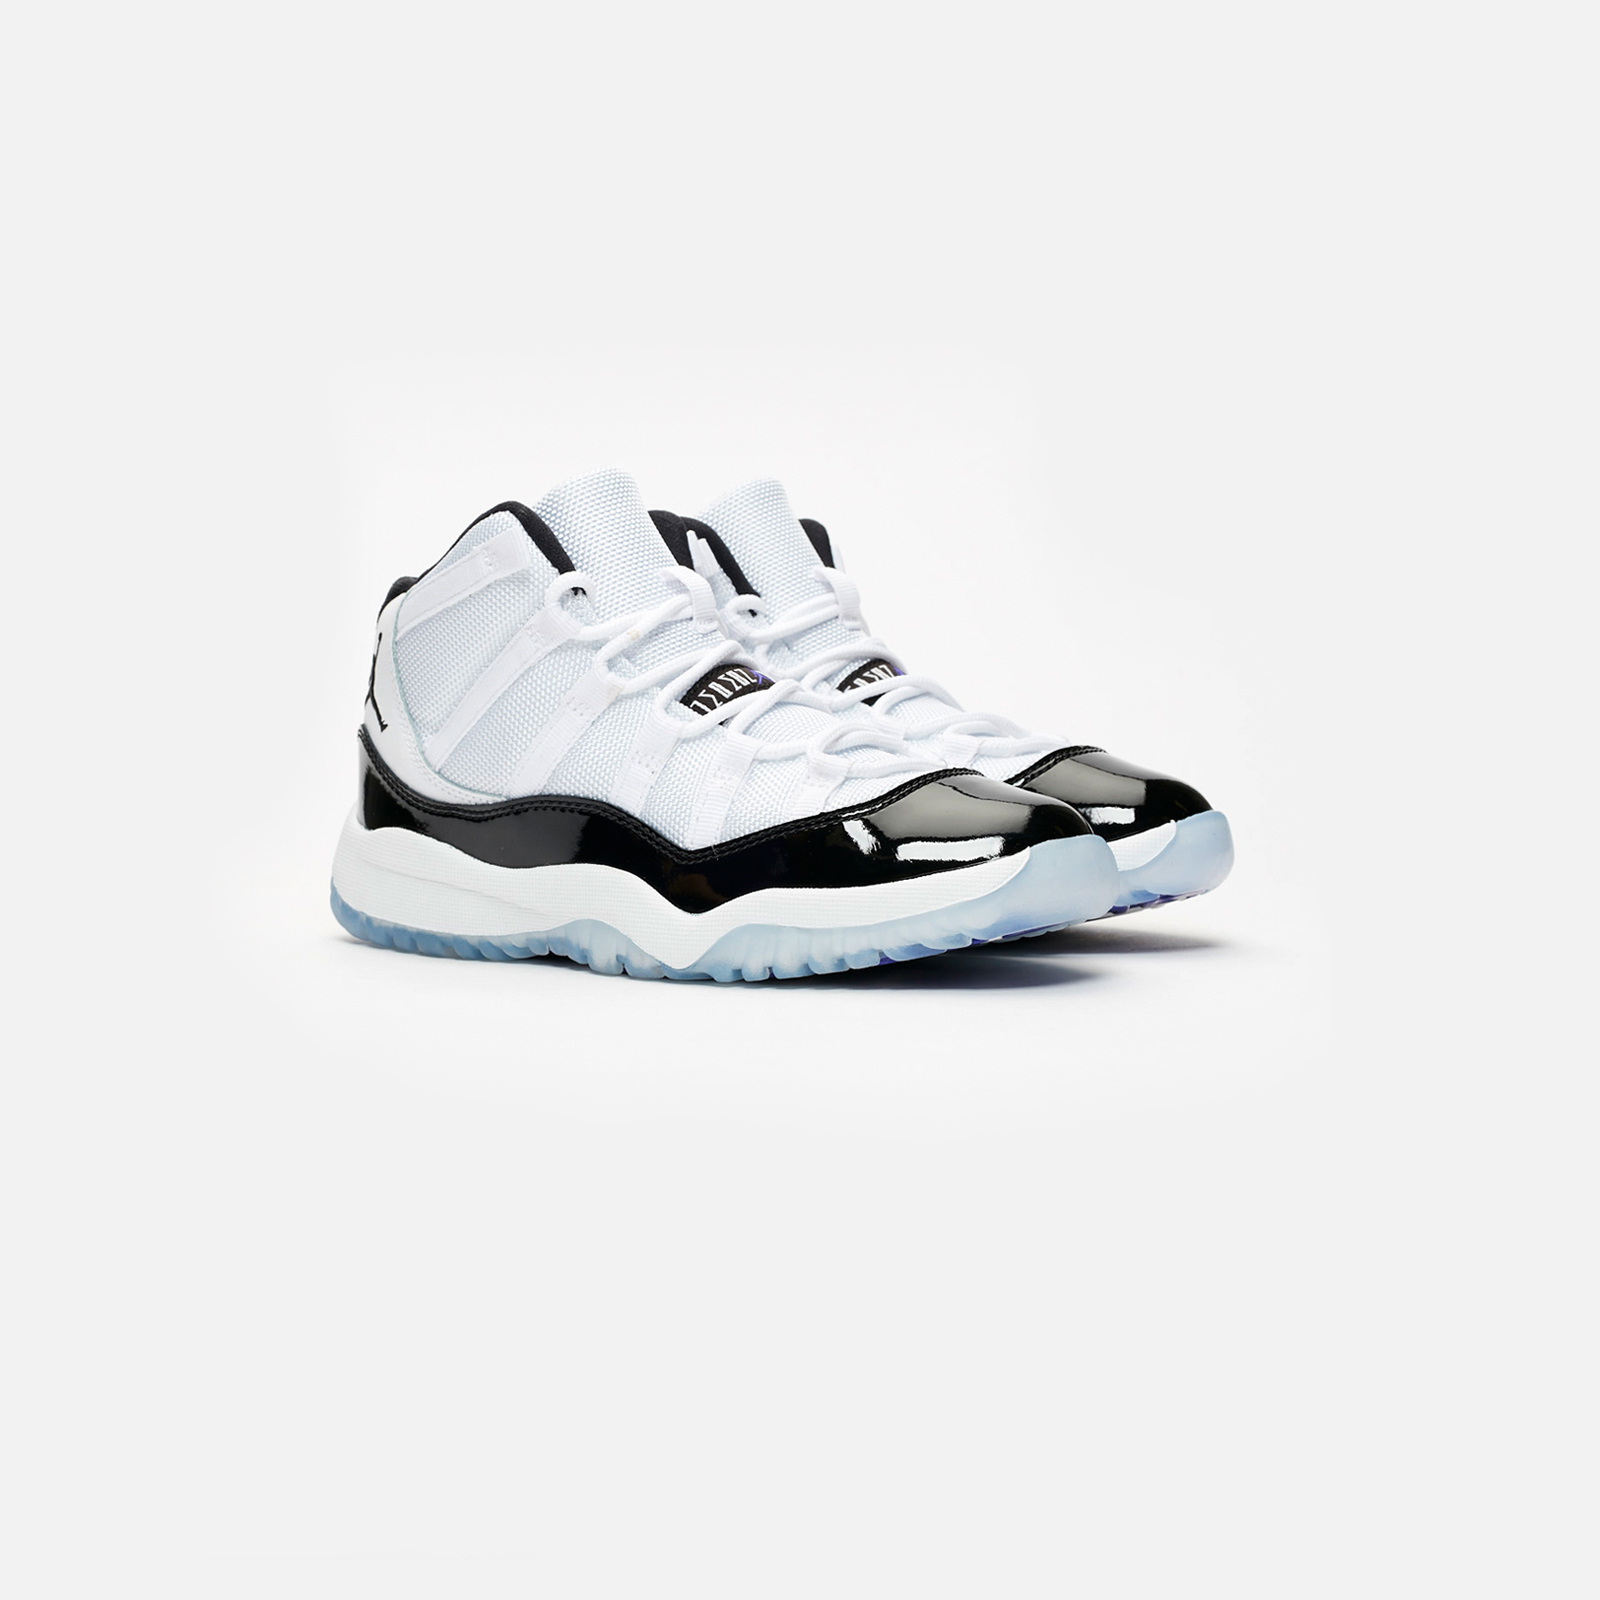 wholesale dealer 02b50 0930a Jordan Brand Air Jordan 11 Retro (PS)